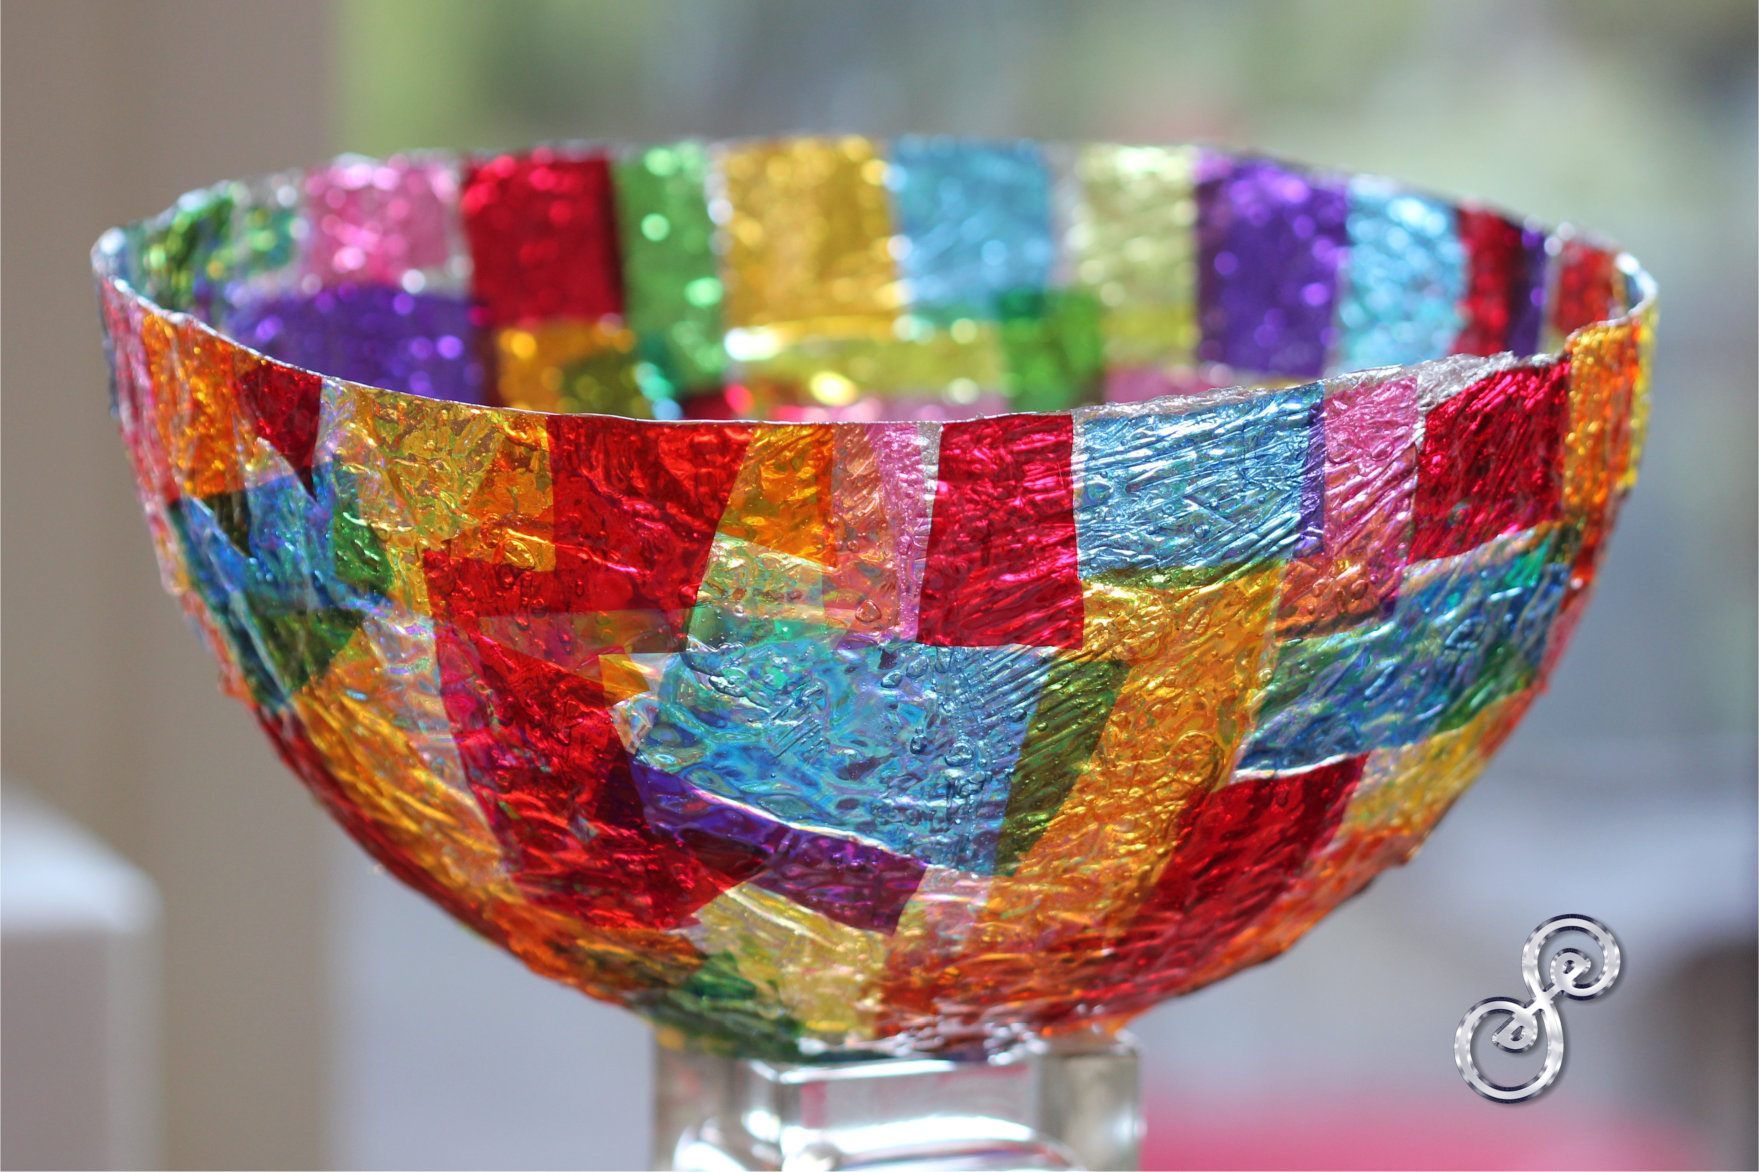 Colourful happy bowl